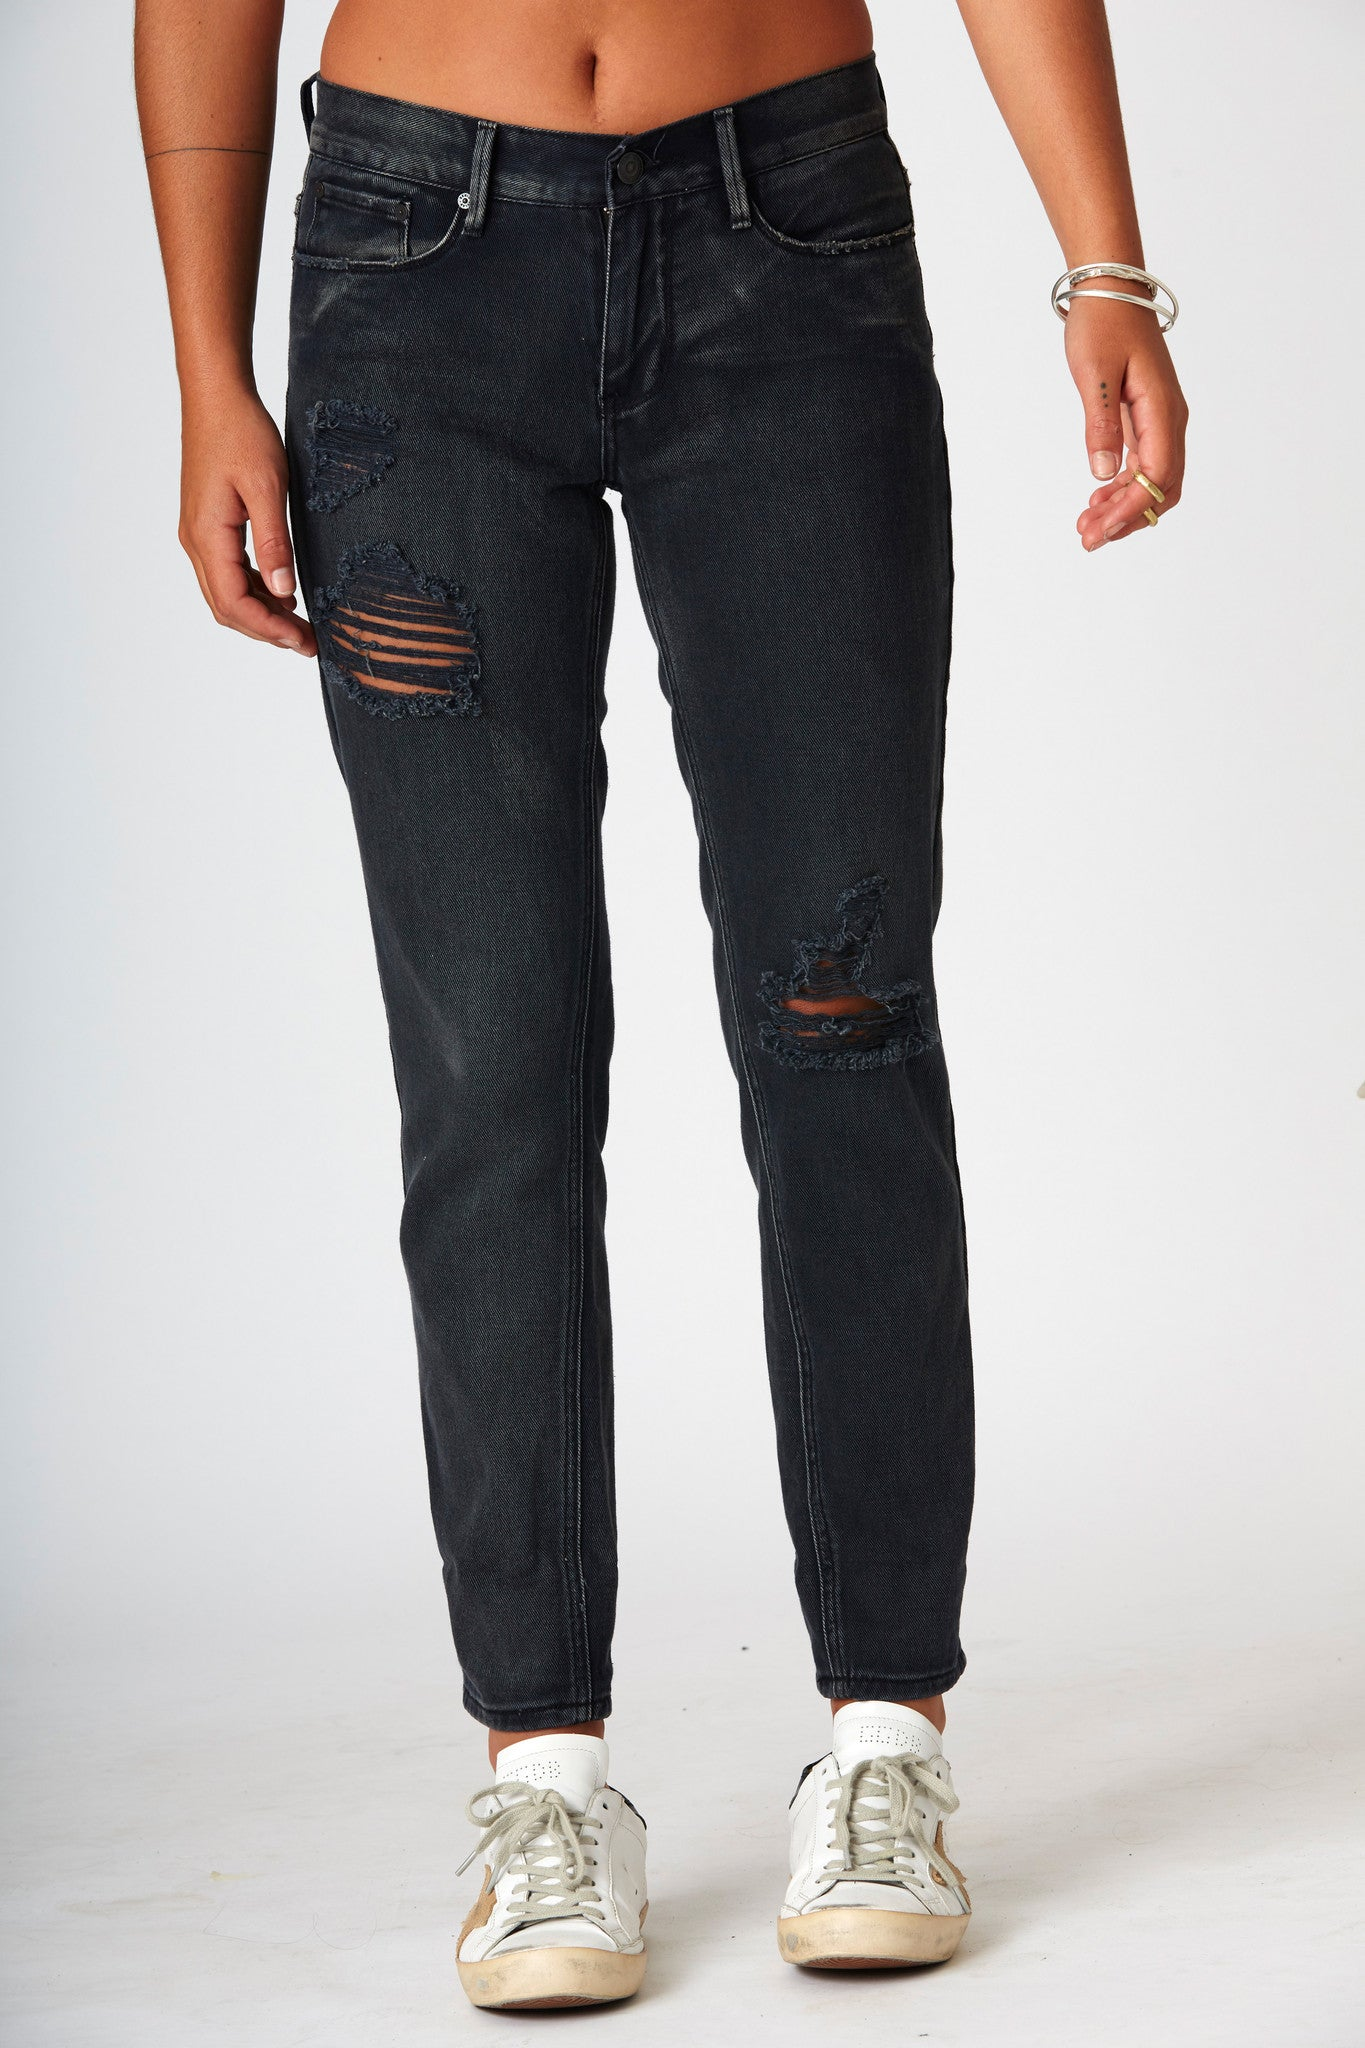 #3A10 Boyfriend Raven Black - SALE - - denimcolab